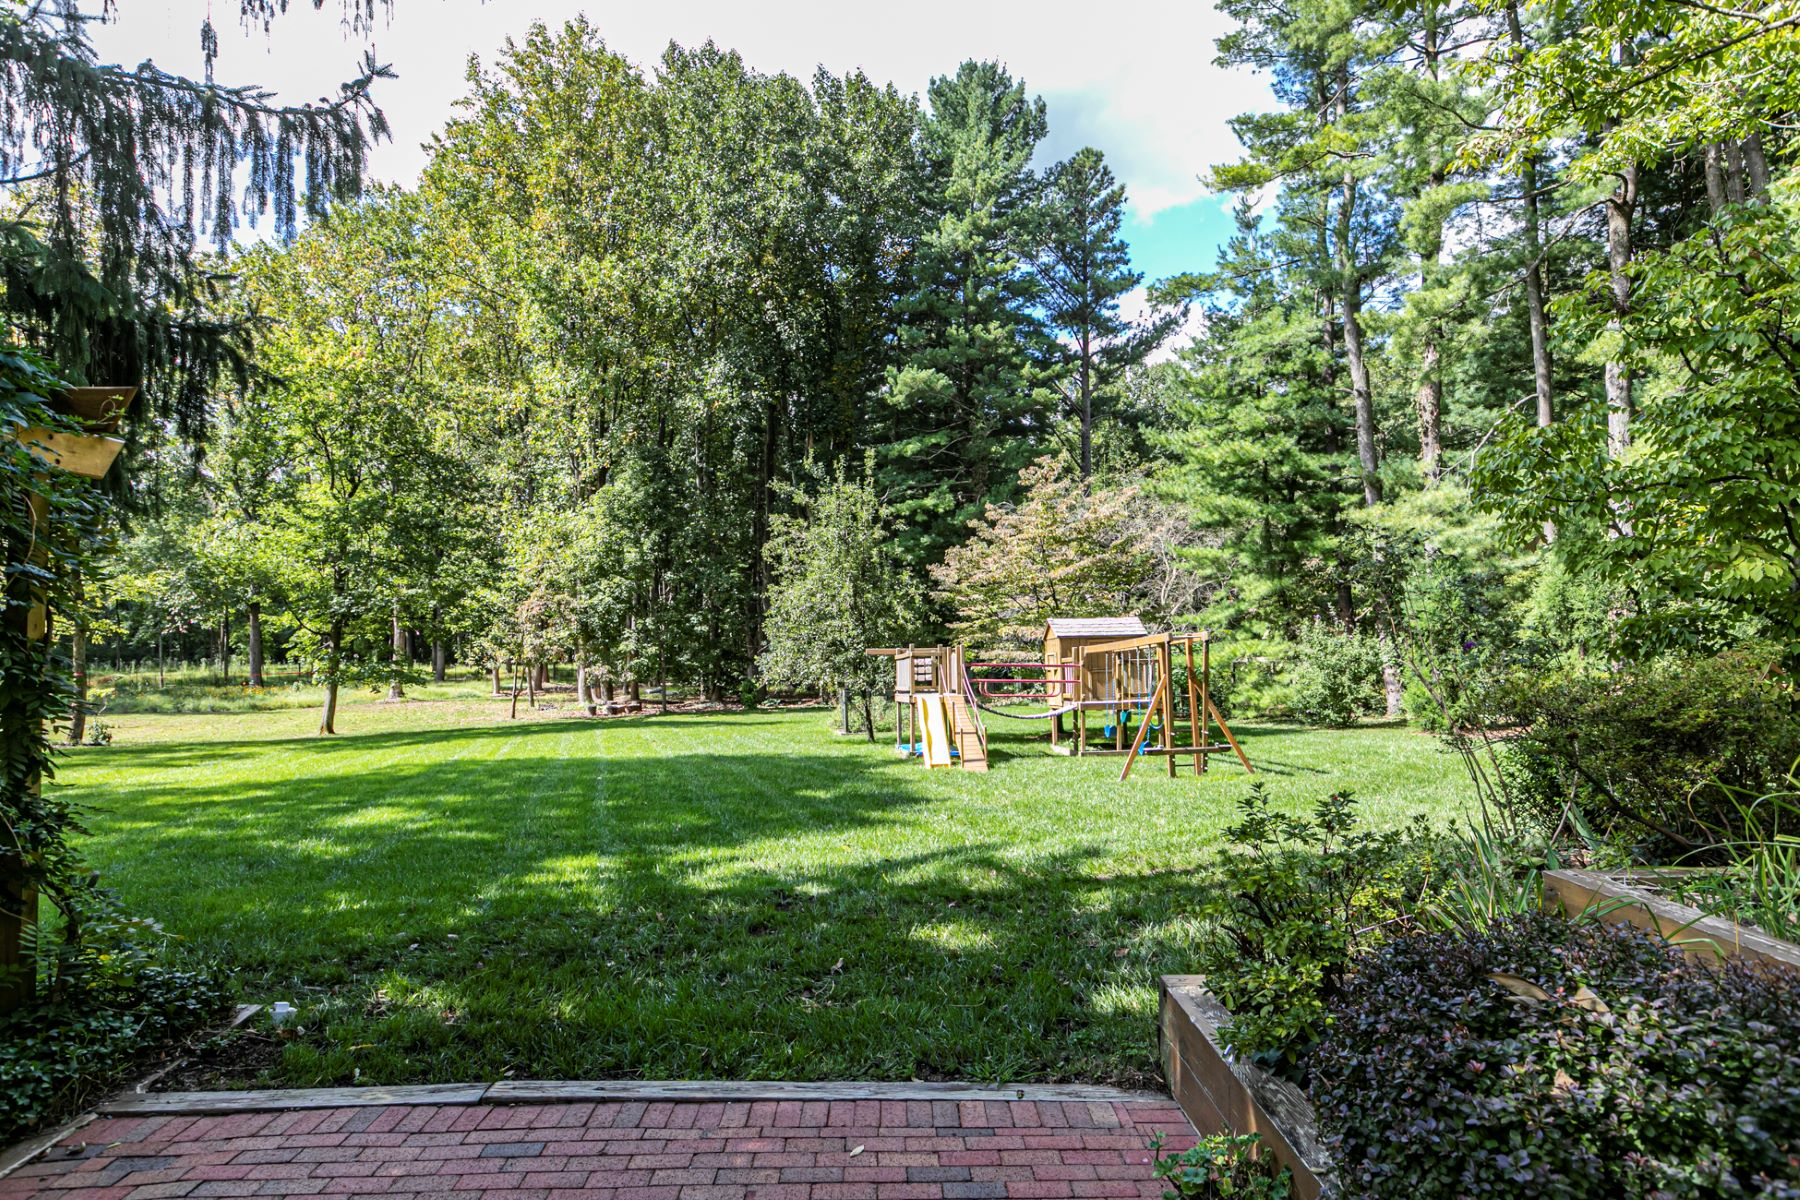 Additional photo for property listing at Updated Edgerstoune 5 Bedroom on 3+ Glorious Acres 141 Hun Road, Princeton, New Jersey 08540 United States